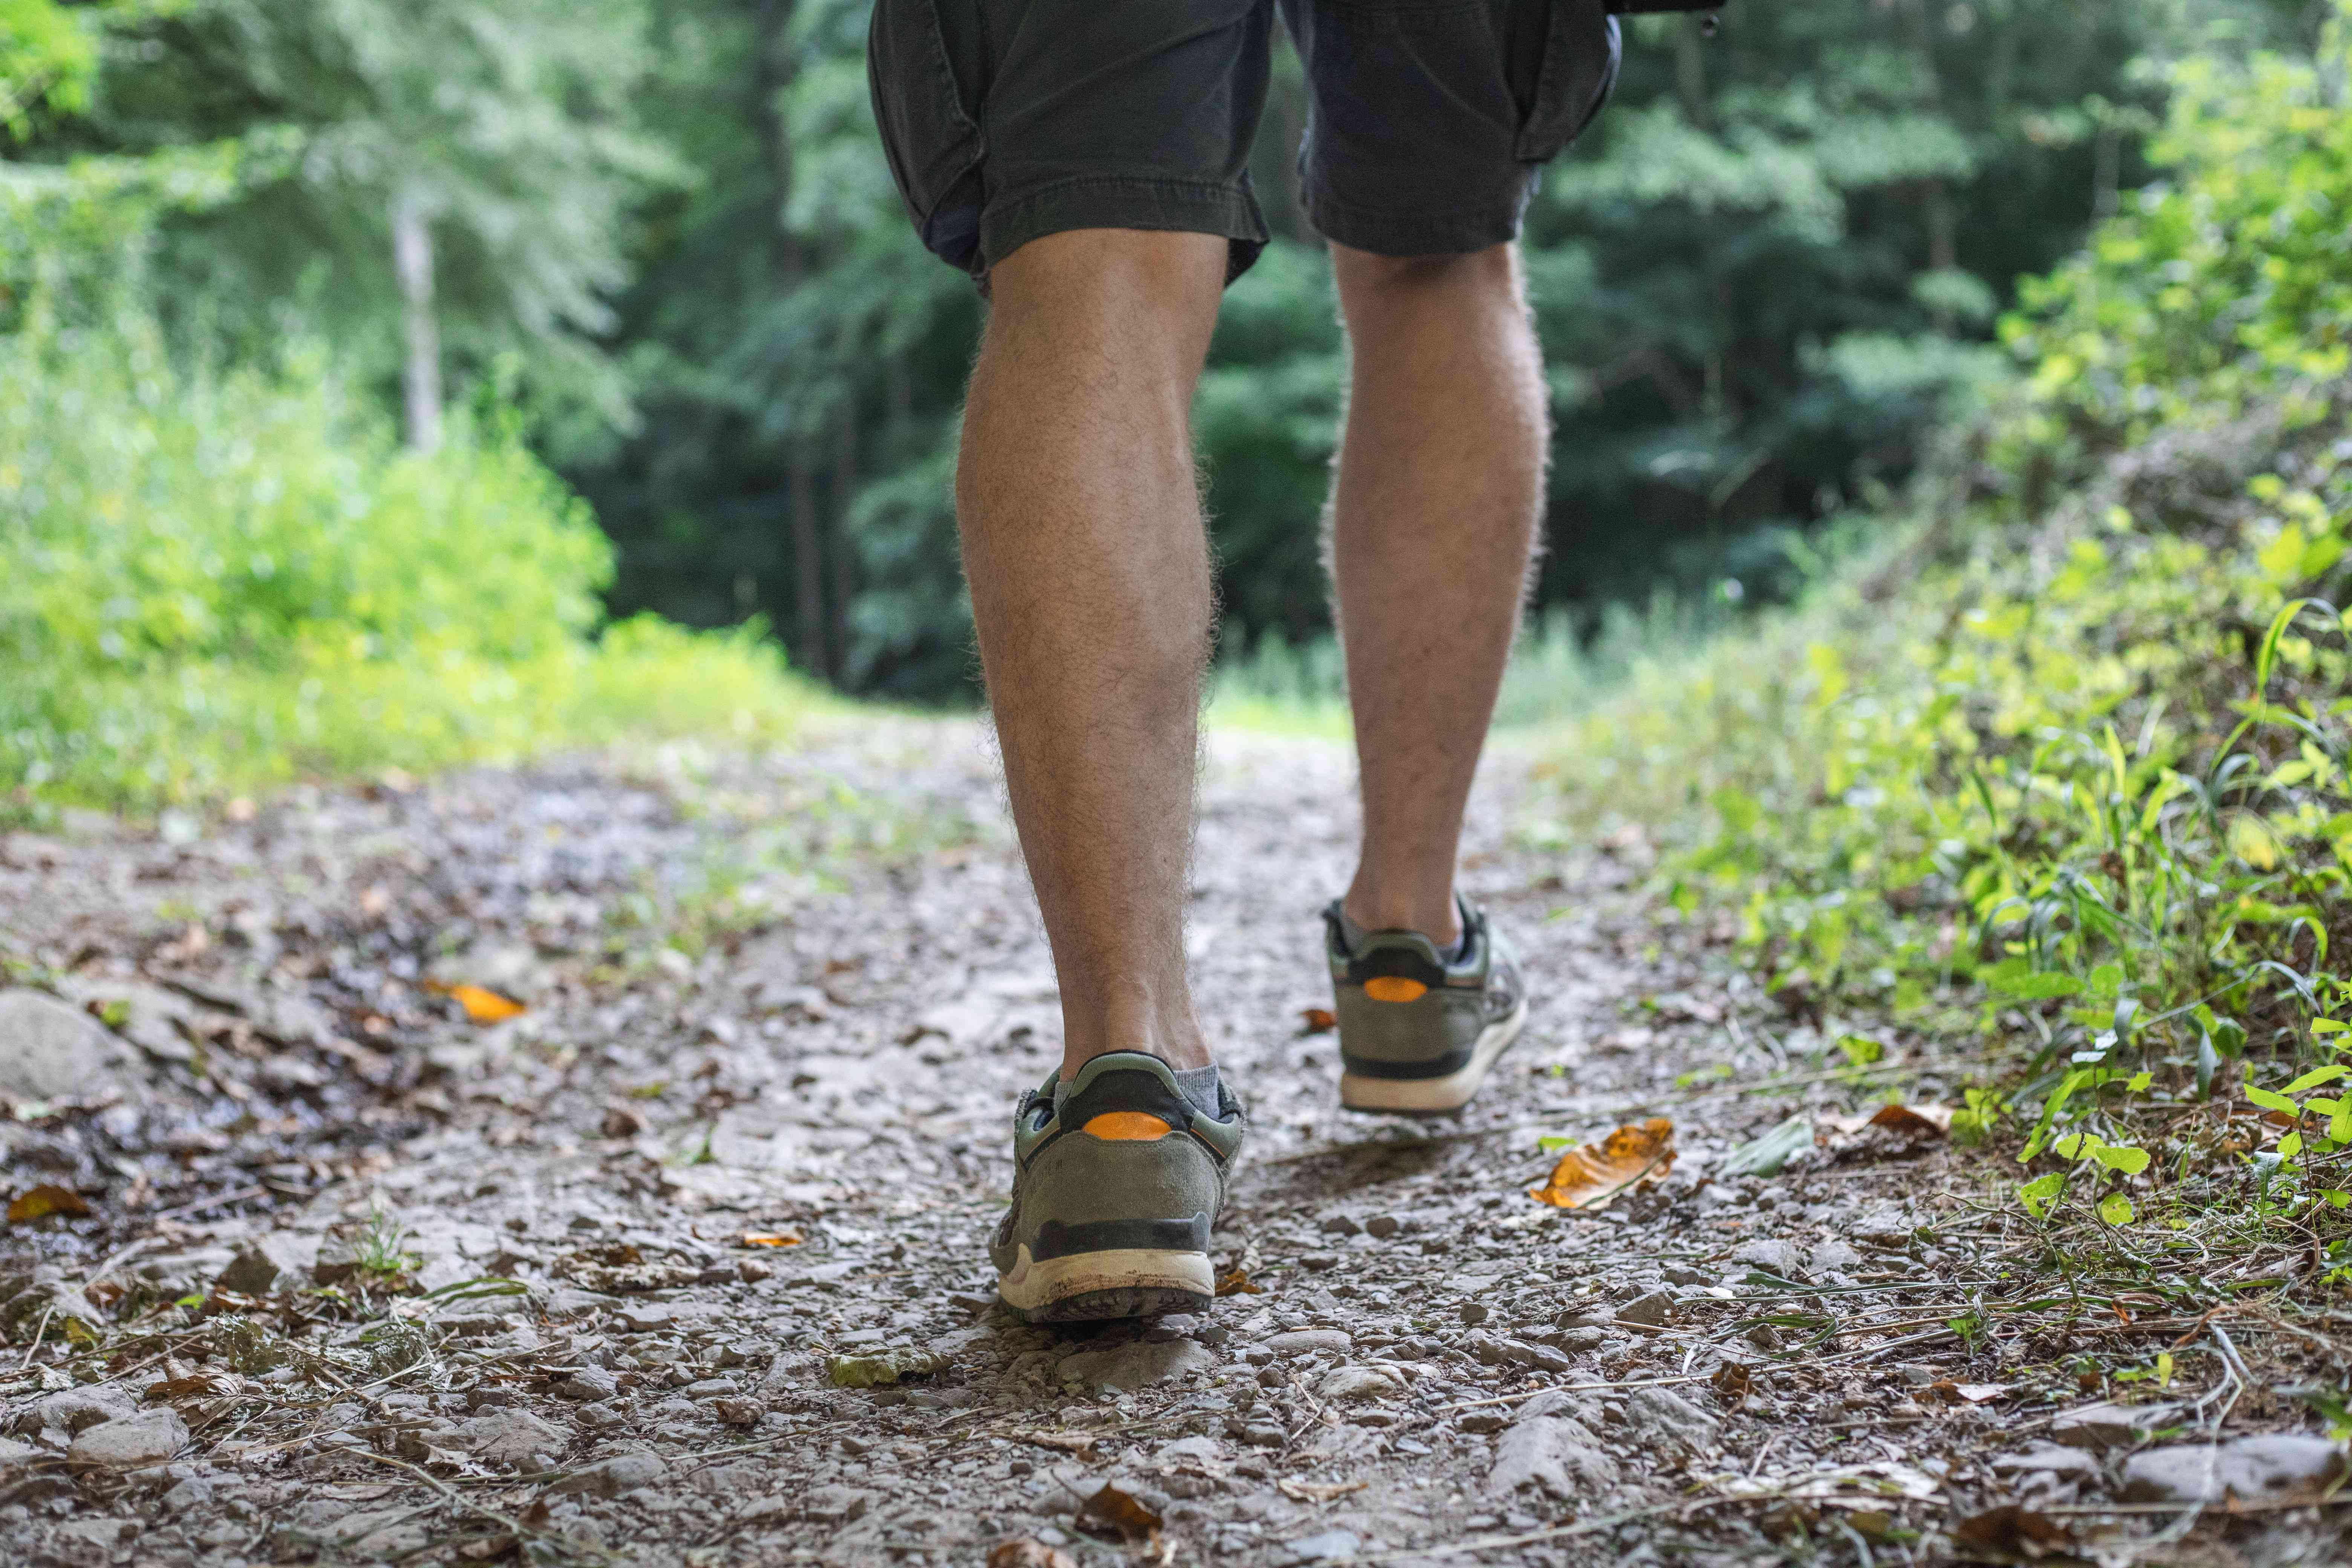 guy in running shoes and shorts stays on hiking trail while heading into woods